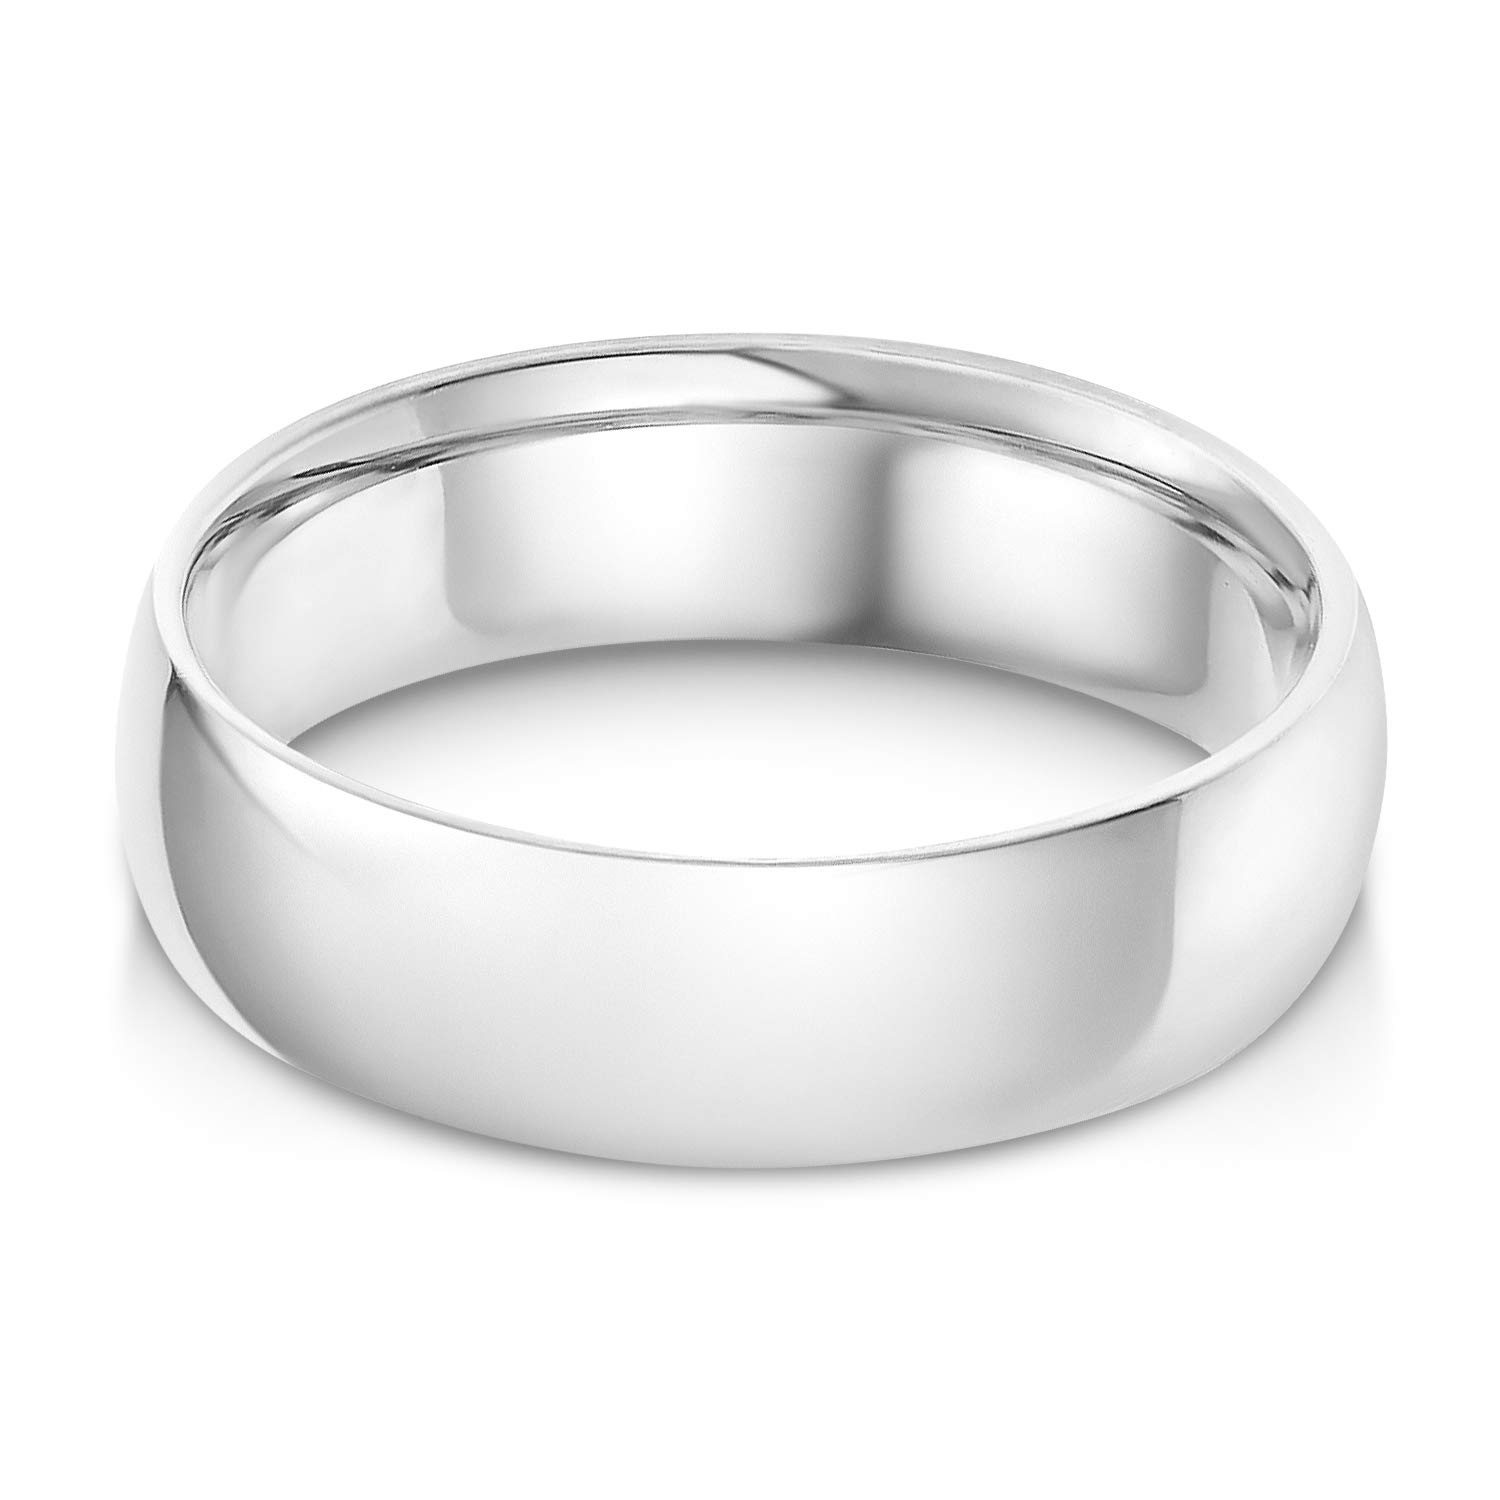 Ioka - 14k Solid White Gold 6mm Plain Comfort Fit Wedding Band - size 8